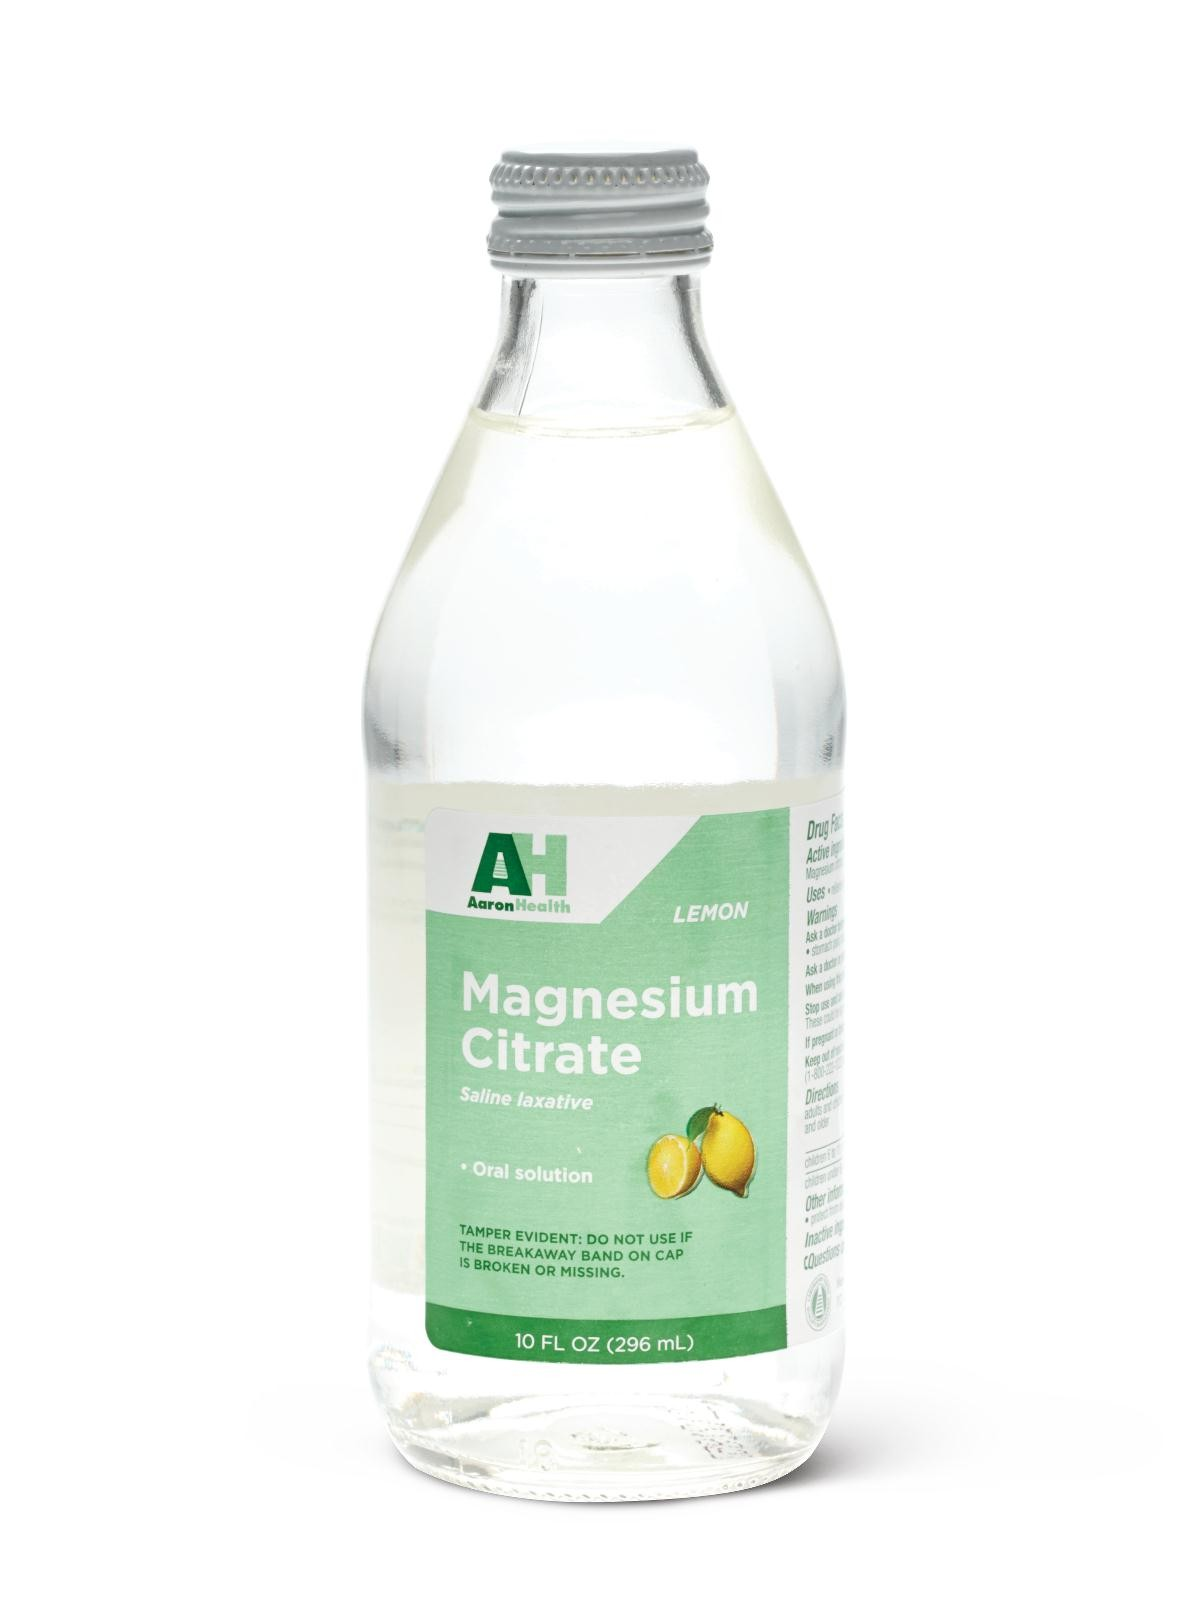 Watch Magnesium Citrate video